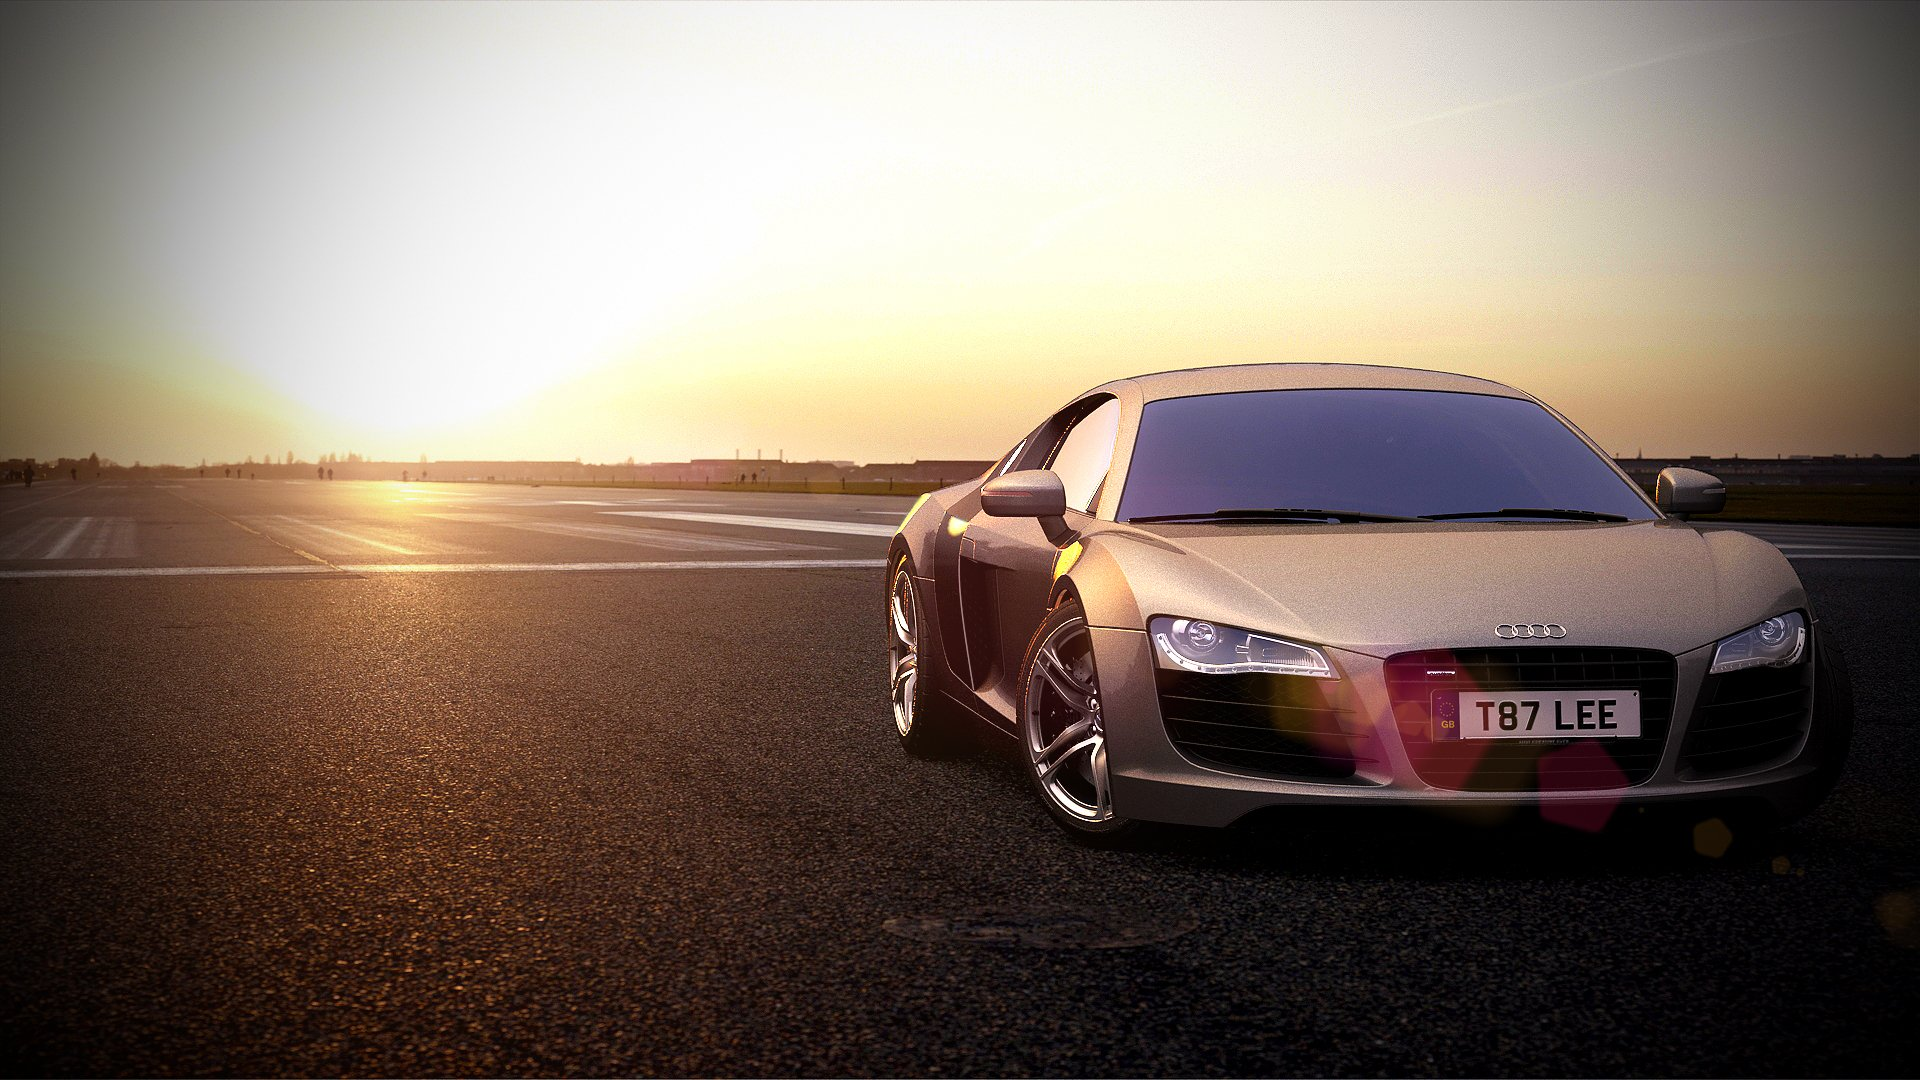 Audi R HD Wallpapers Background Images Wallpaper Abyss - Audi car background